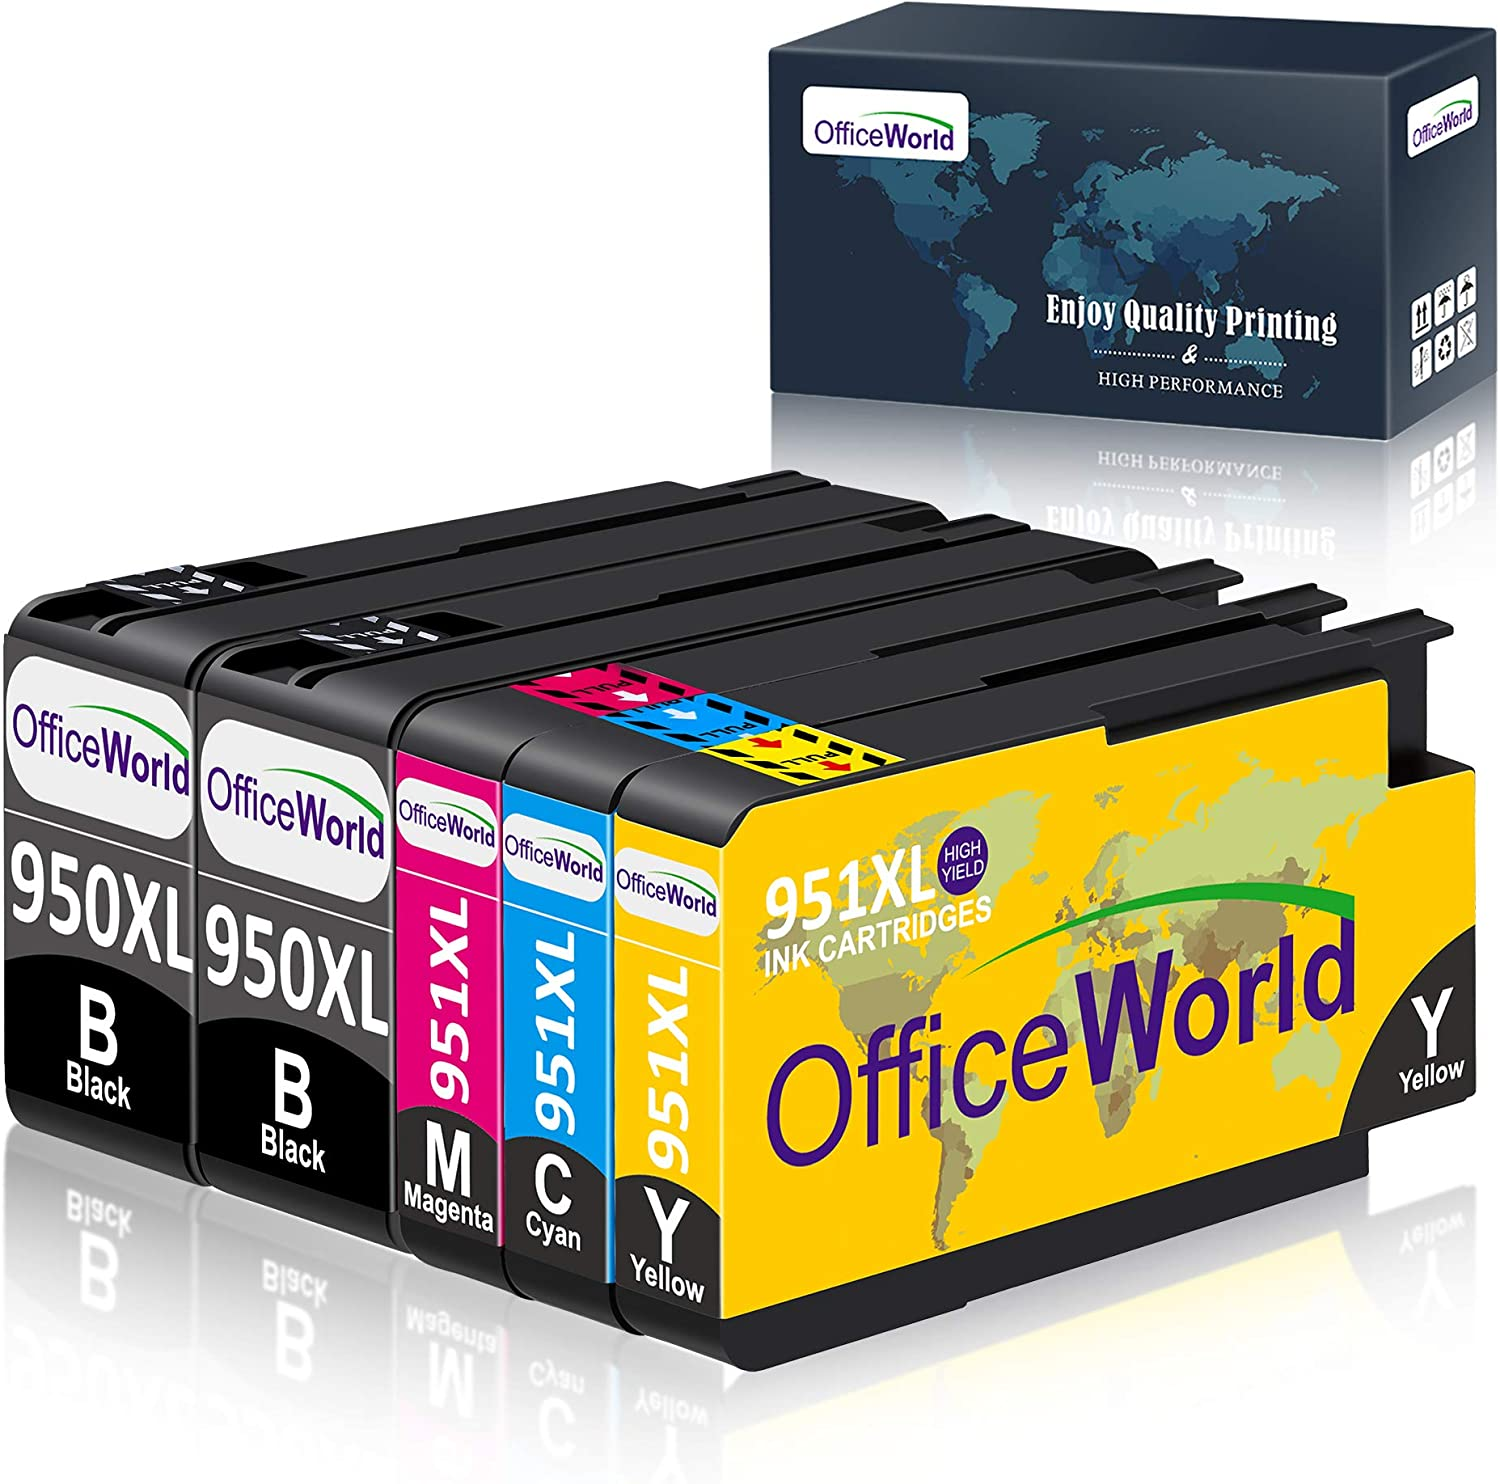 OfficeWorld Compatible Ink Cartridge Replacement for HP 950 951 950XL 951XL for HP Officejet Pro 8600 8610 8620 8630 8640 8100 8625 8615 251dw 271dw 276dw Printer, 5-Pack